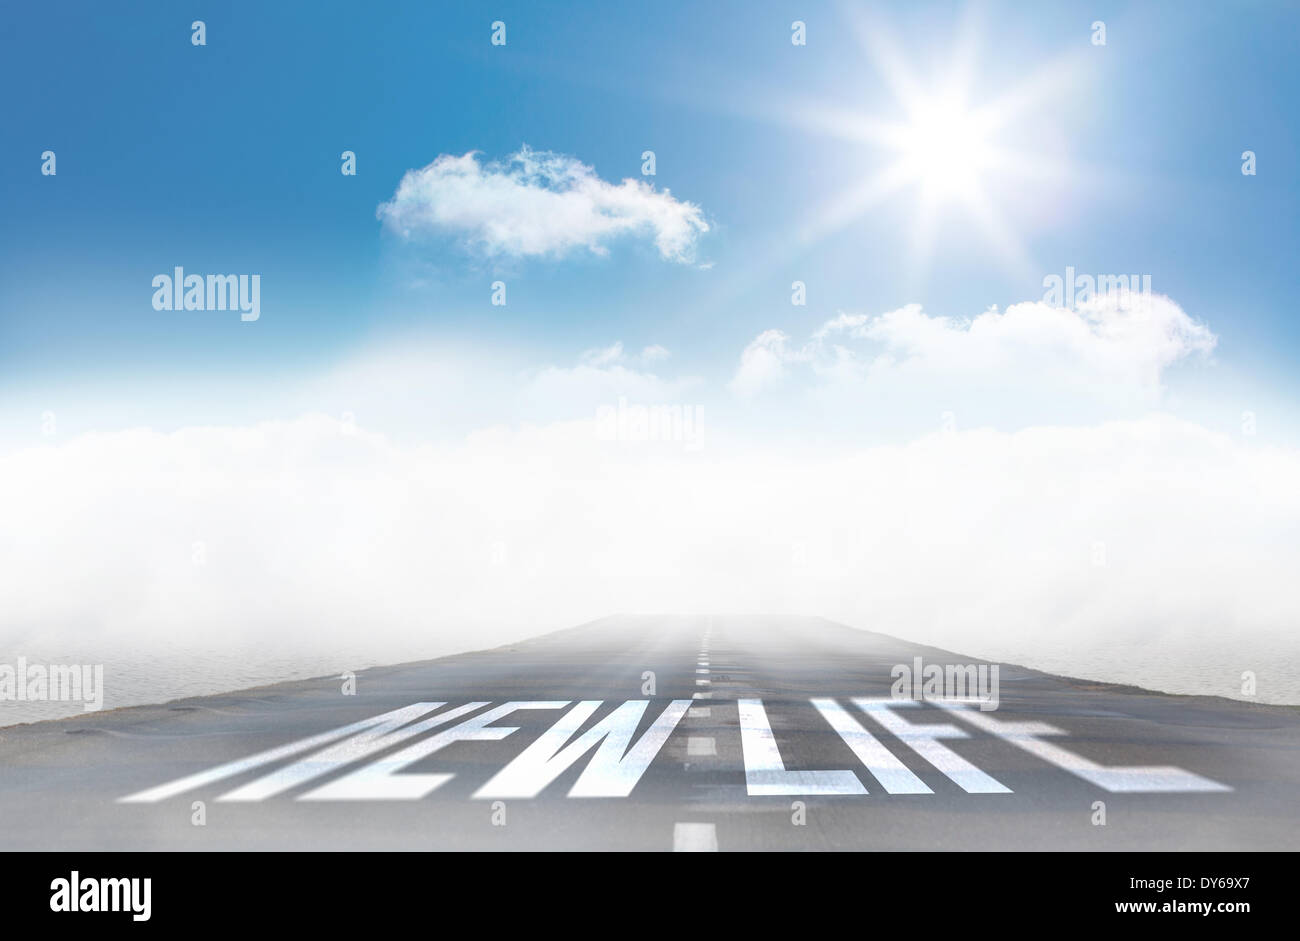 New life against open road - Stock Image